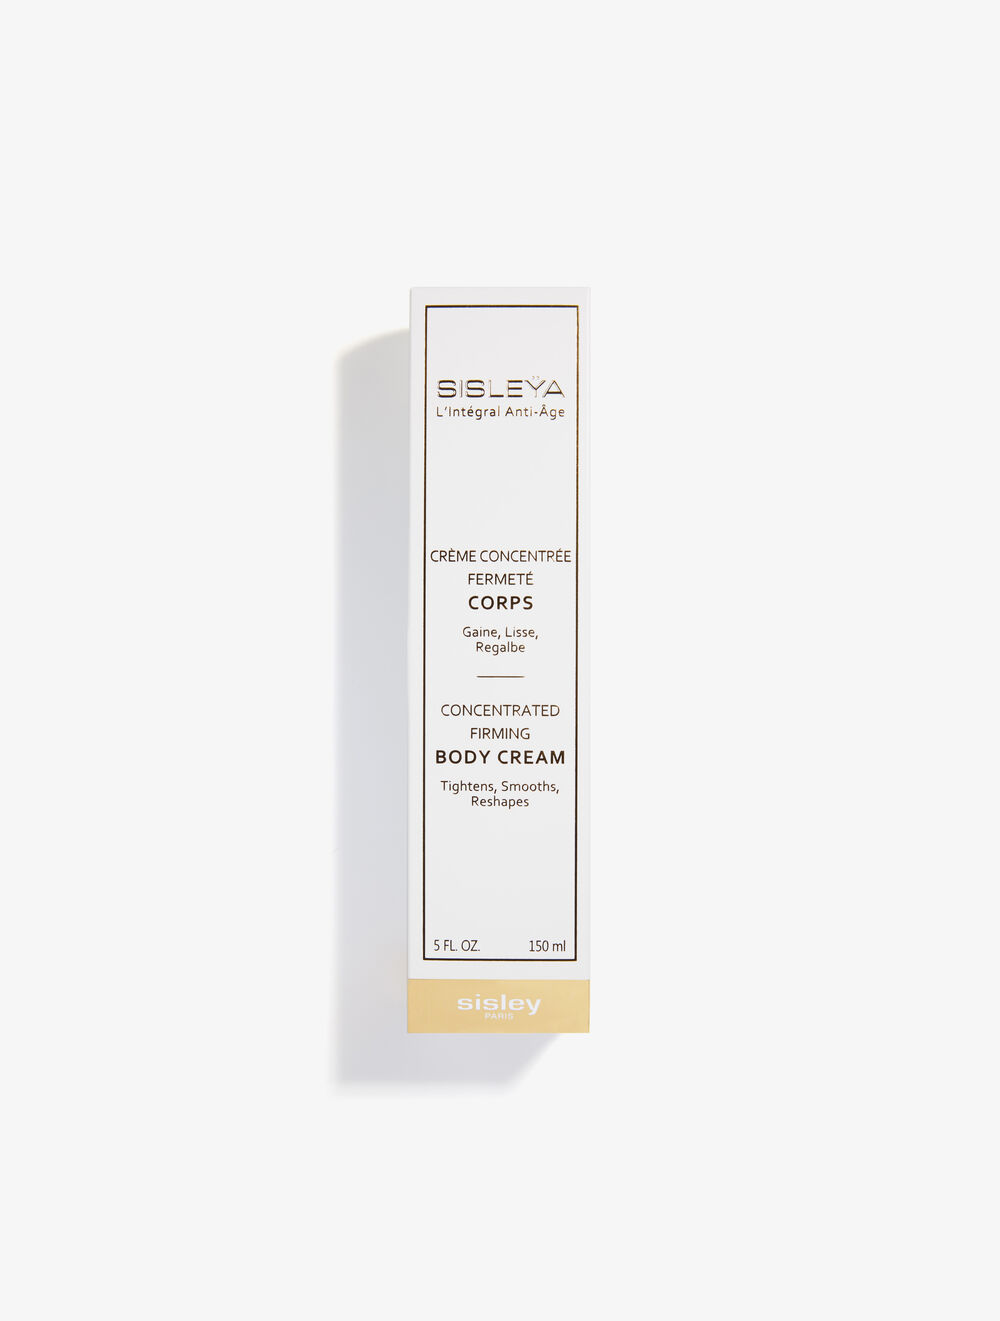 Sisleÿa L'Intégral Anti-Âge Concentrated Firming Body Cream